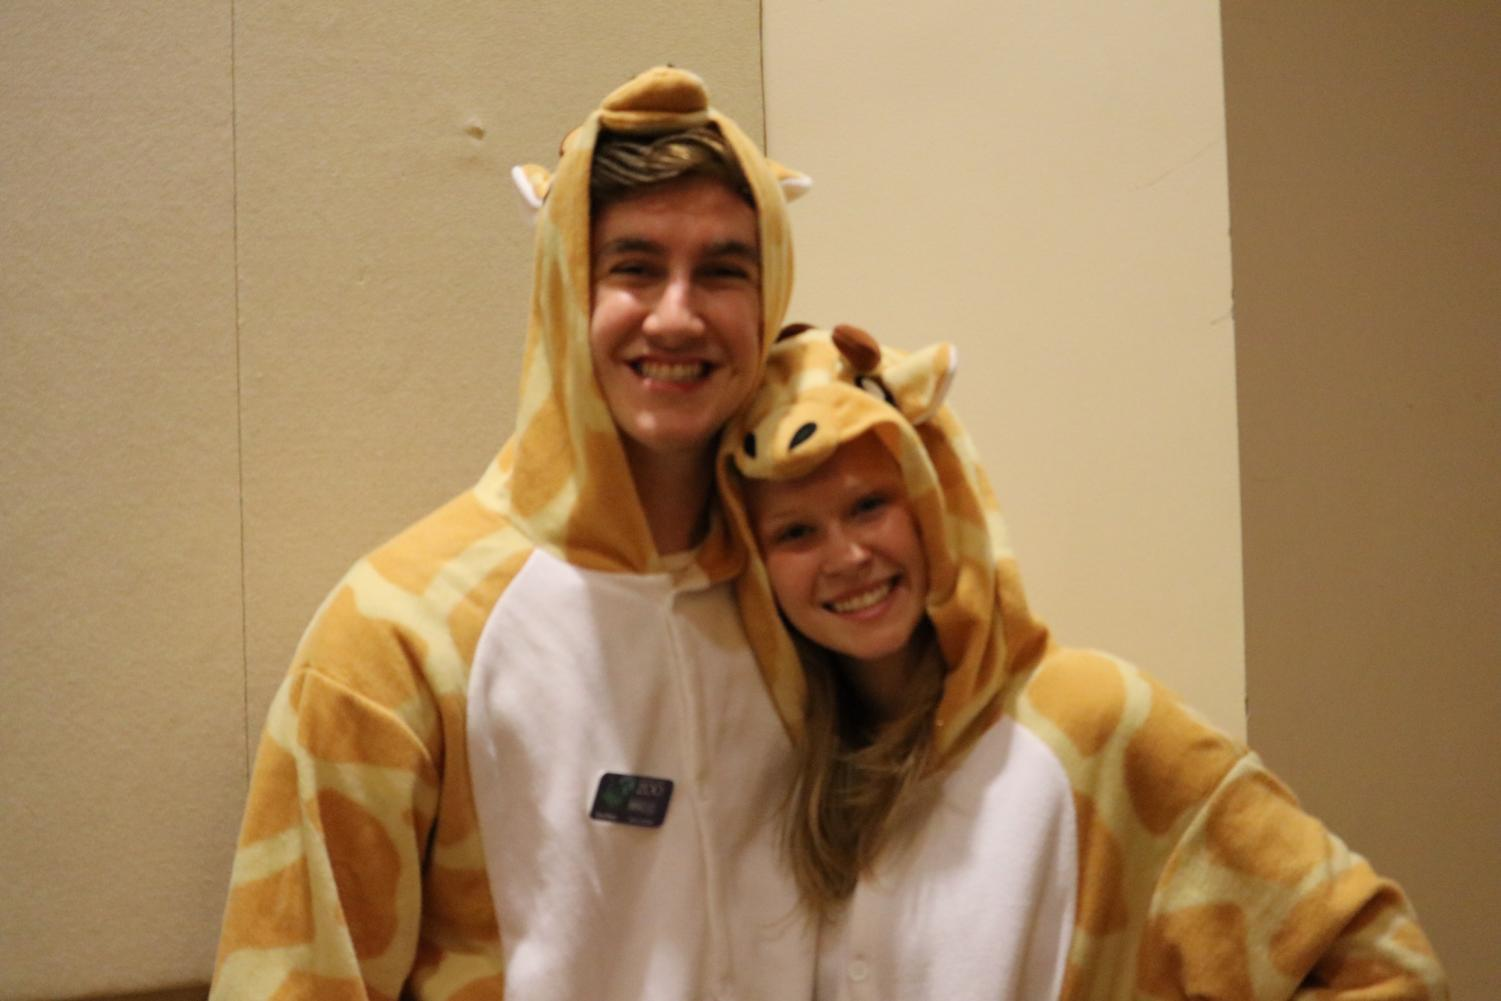 During a three hour midsummer training, ZooTeens dress up to act out a scene to practice zoo protocols.